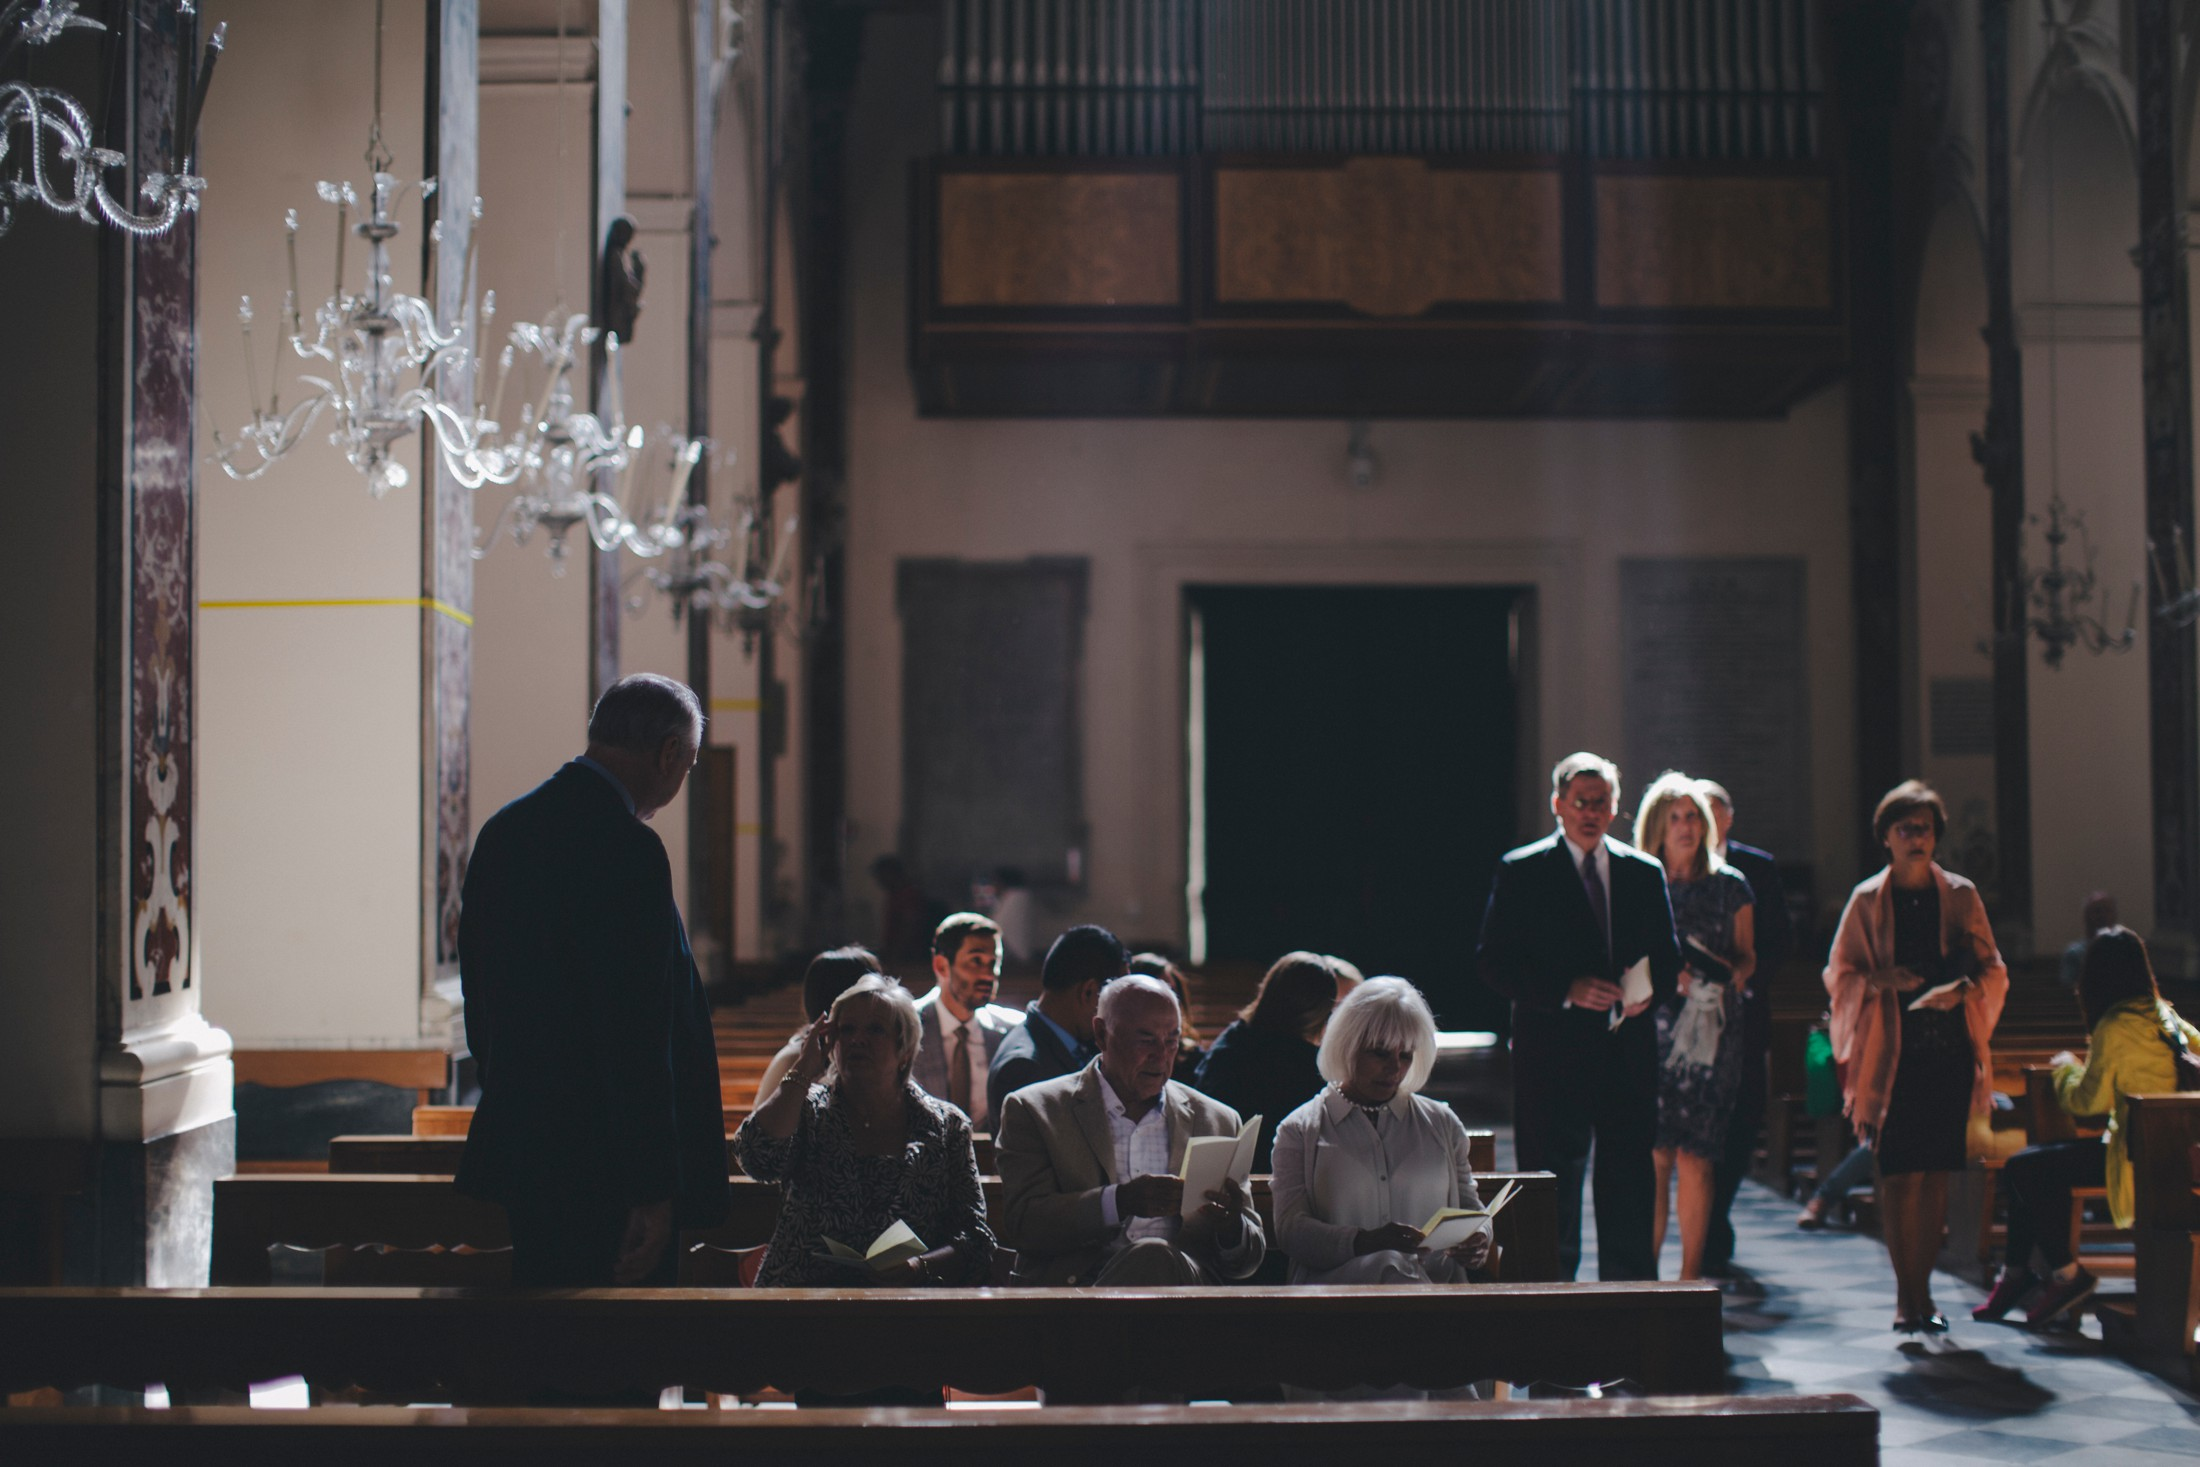 wedding guests enter the church